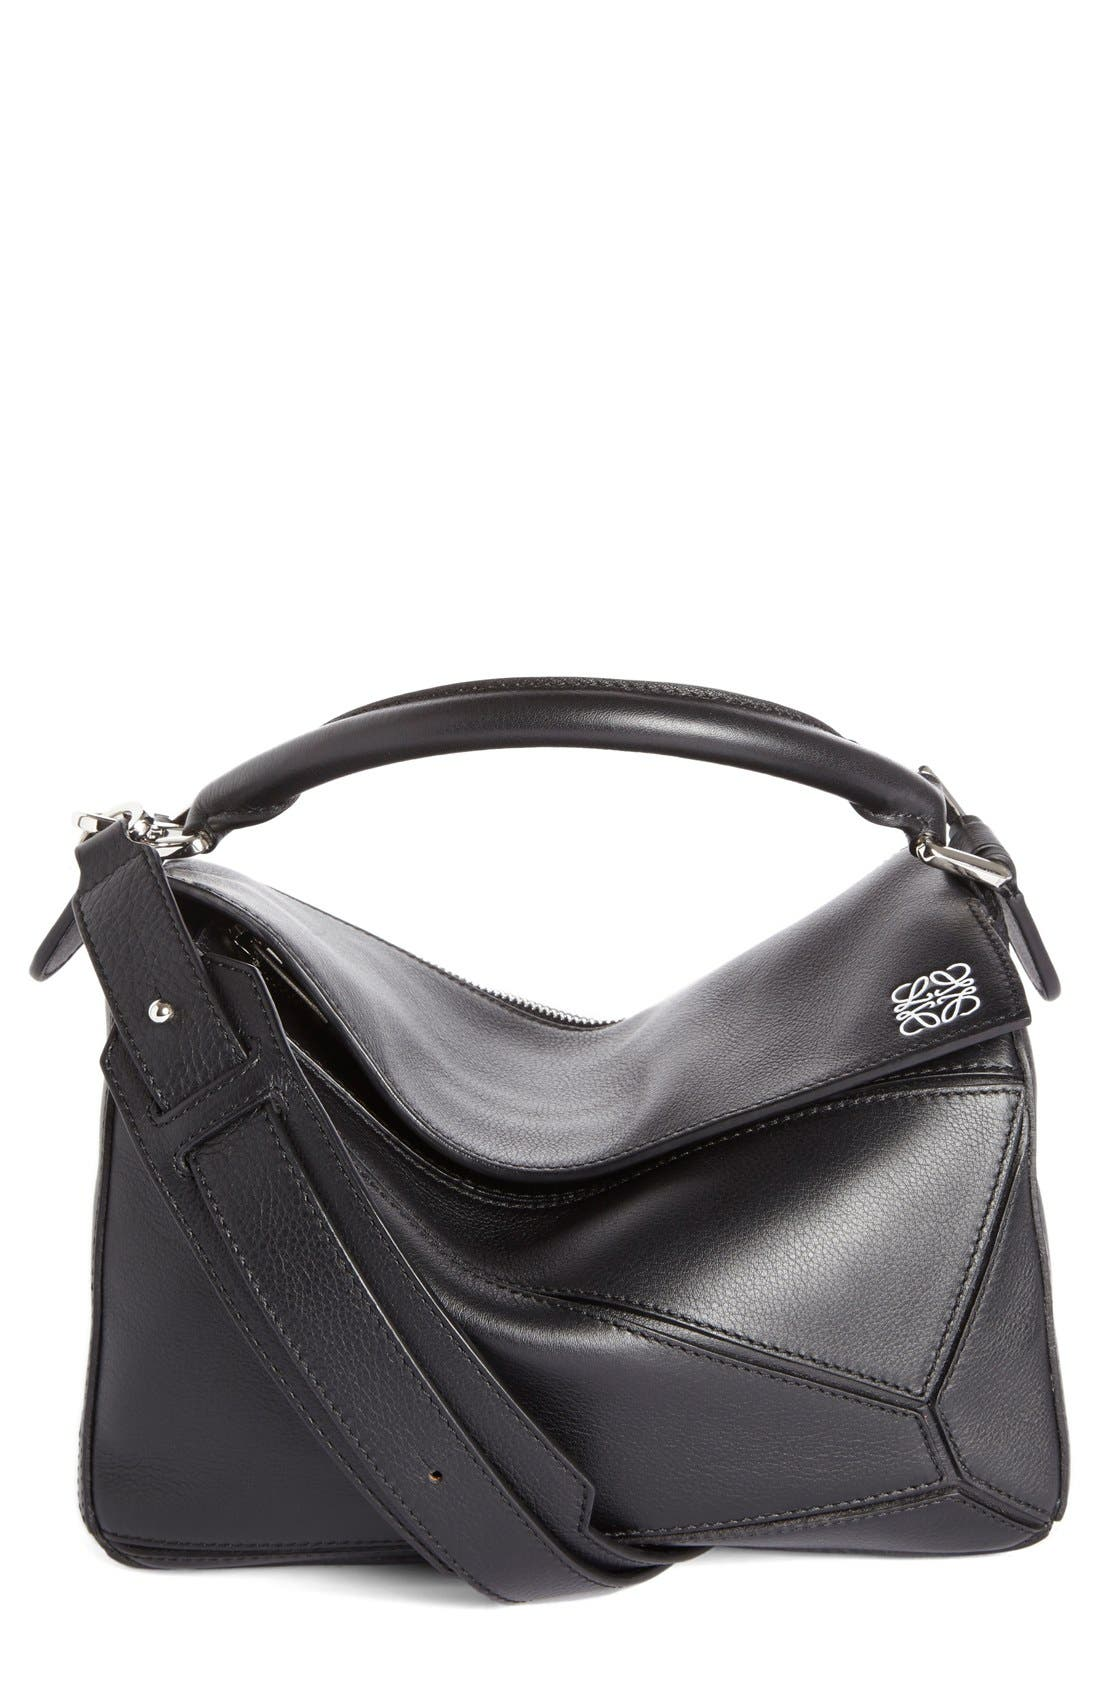 'Small Puzzle' Calfskin Leather Bag,                         Main,                         color, 001